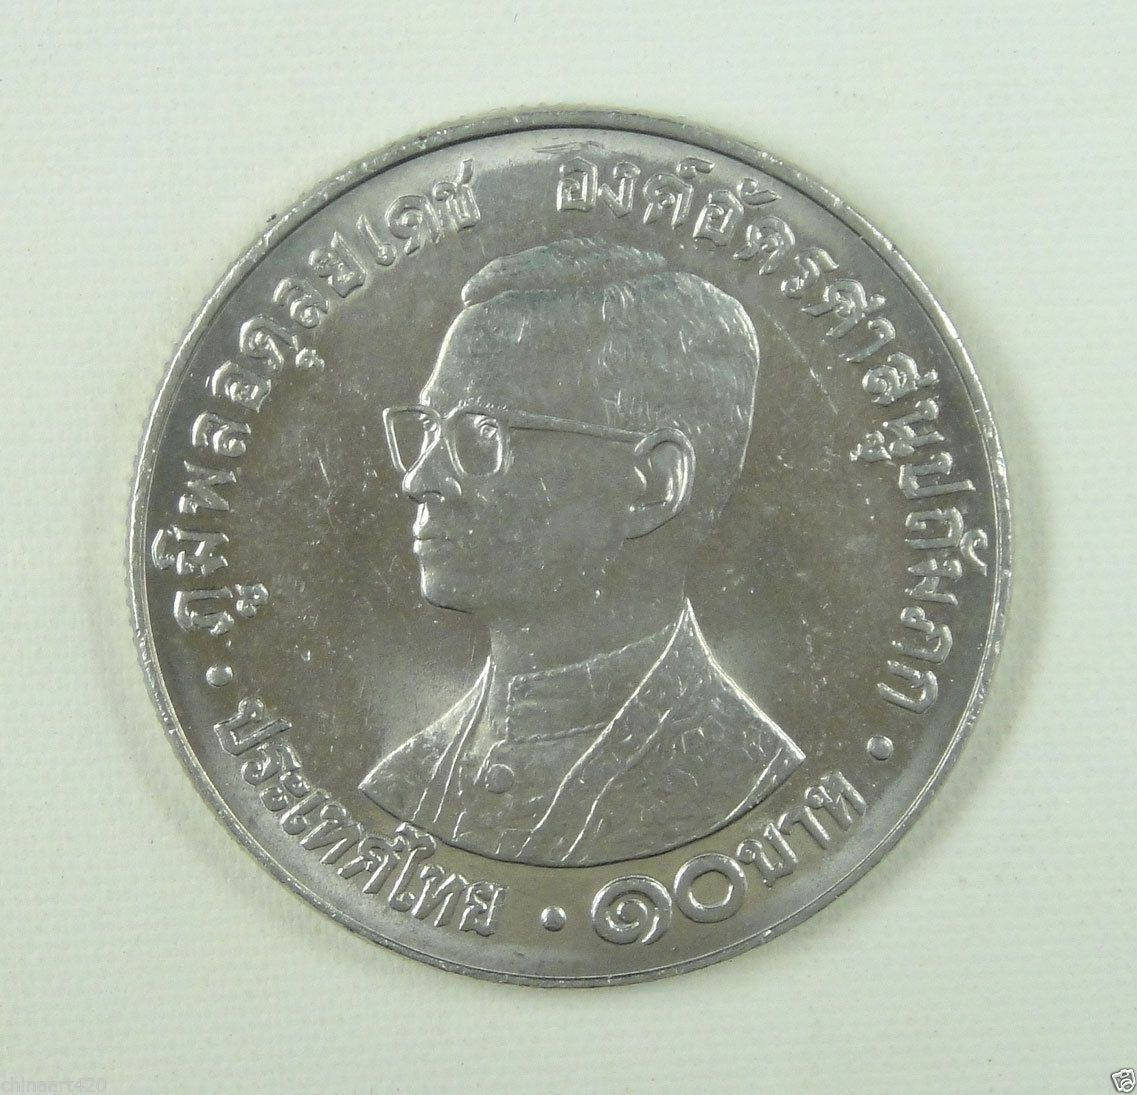 Thailand Commemorative Coin 10 Baht 1980 Unc 30th Anniversary Of